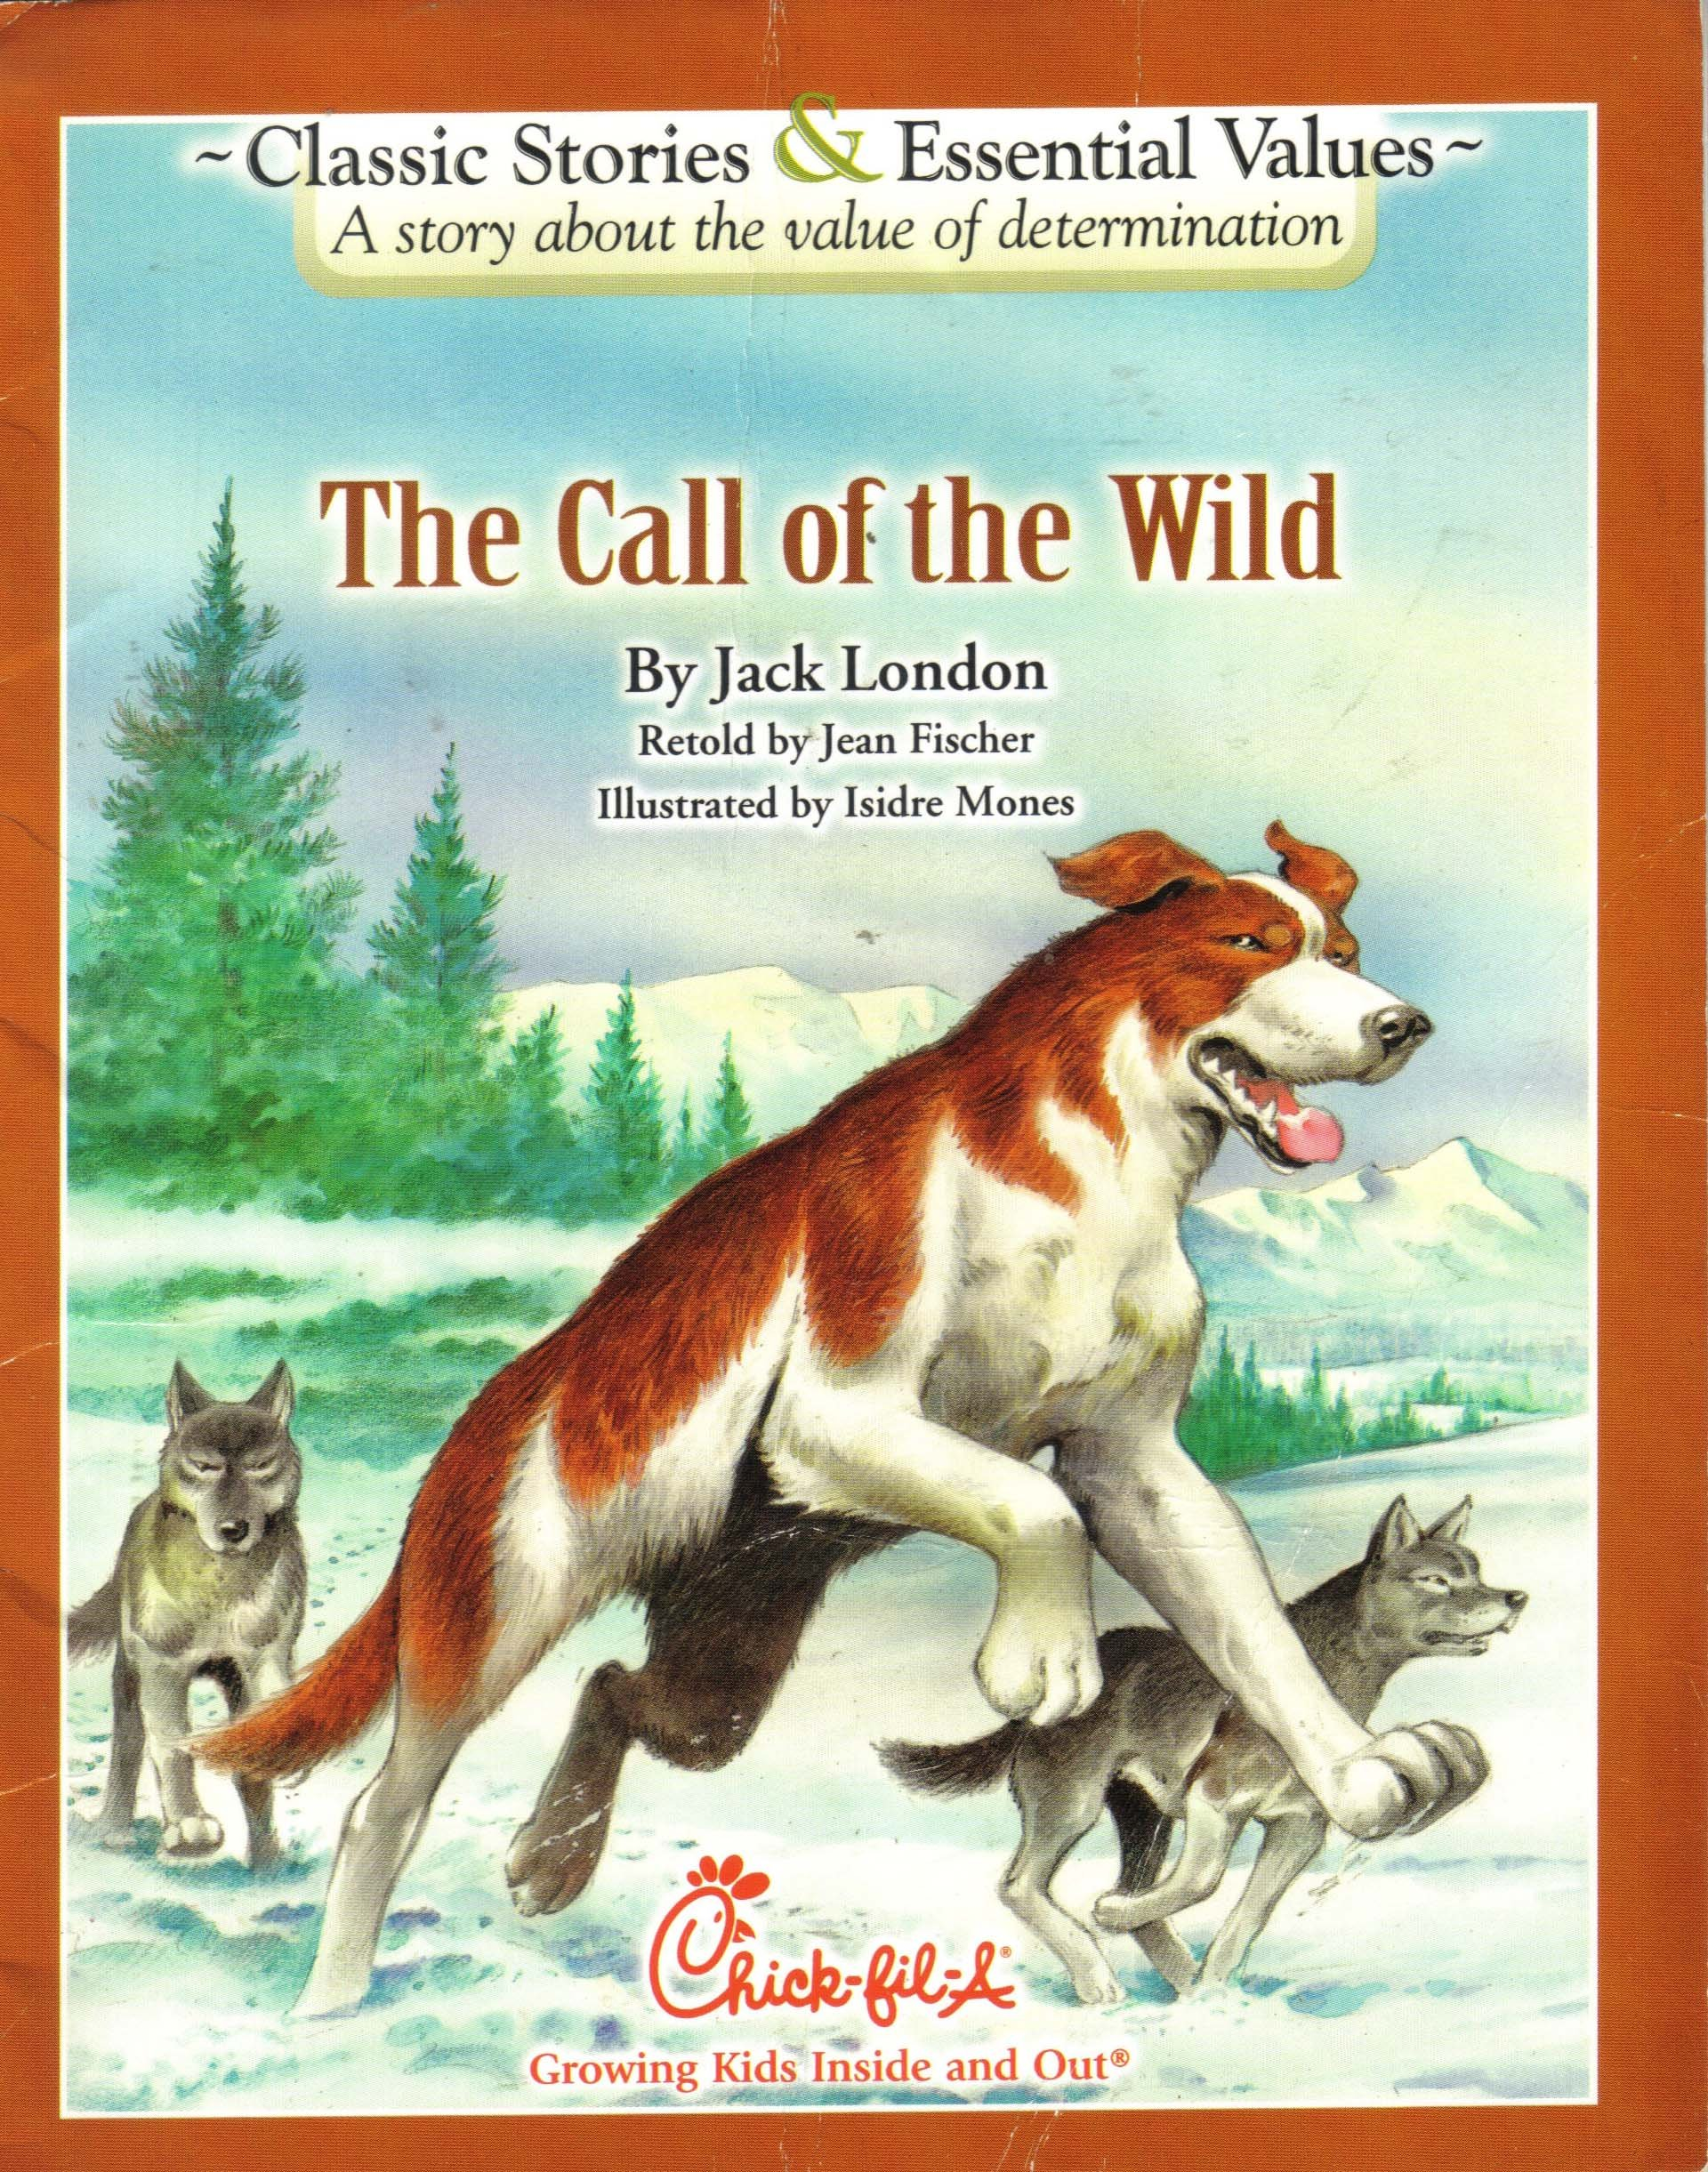 Download The Call of the Wild (Classic Stories & Essential Values, A story about the vaulue of determination) pdf